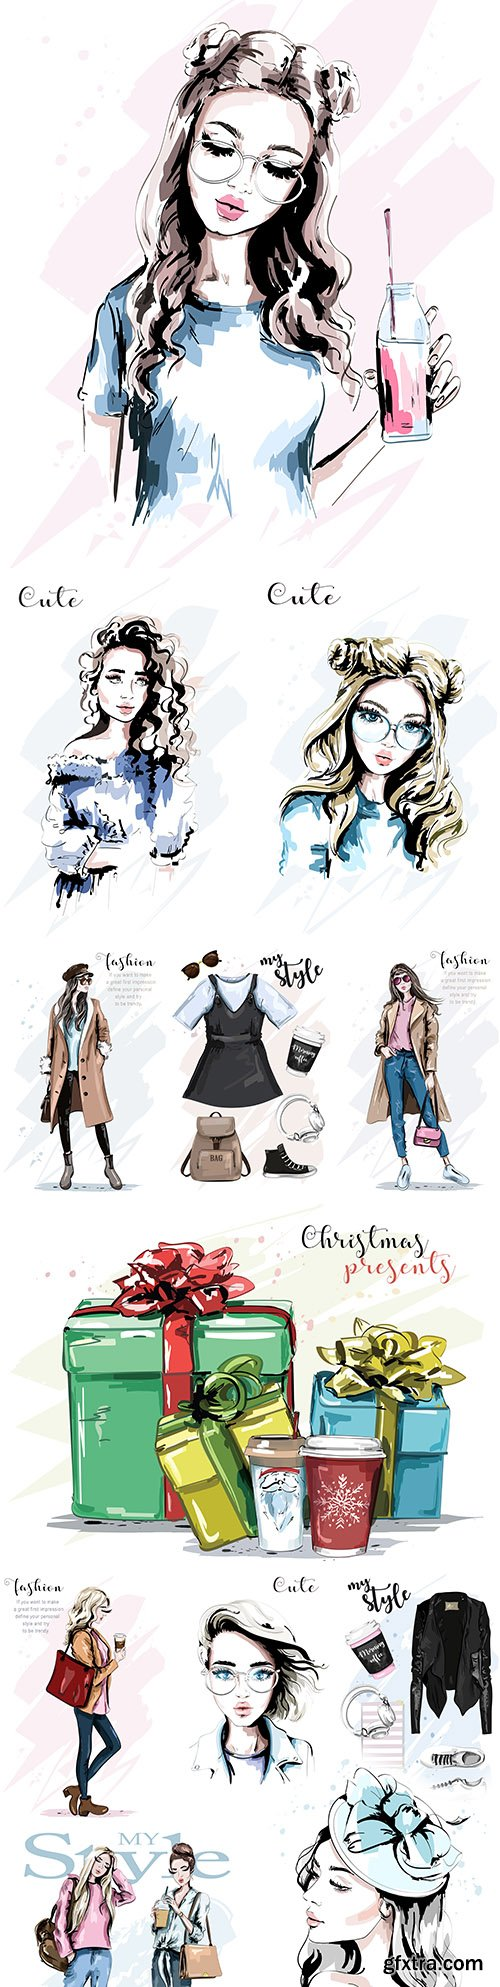 Women pose for fashion cover stylish design illustrations